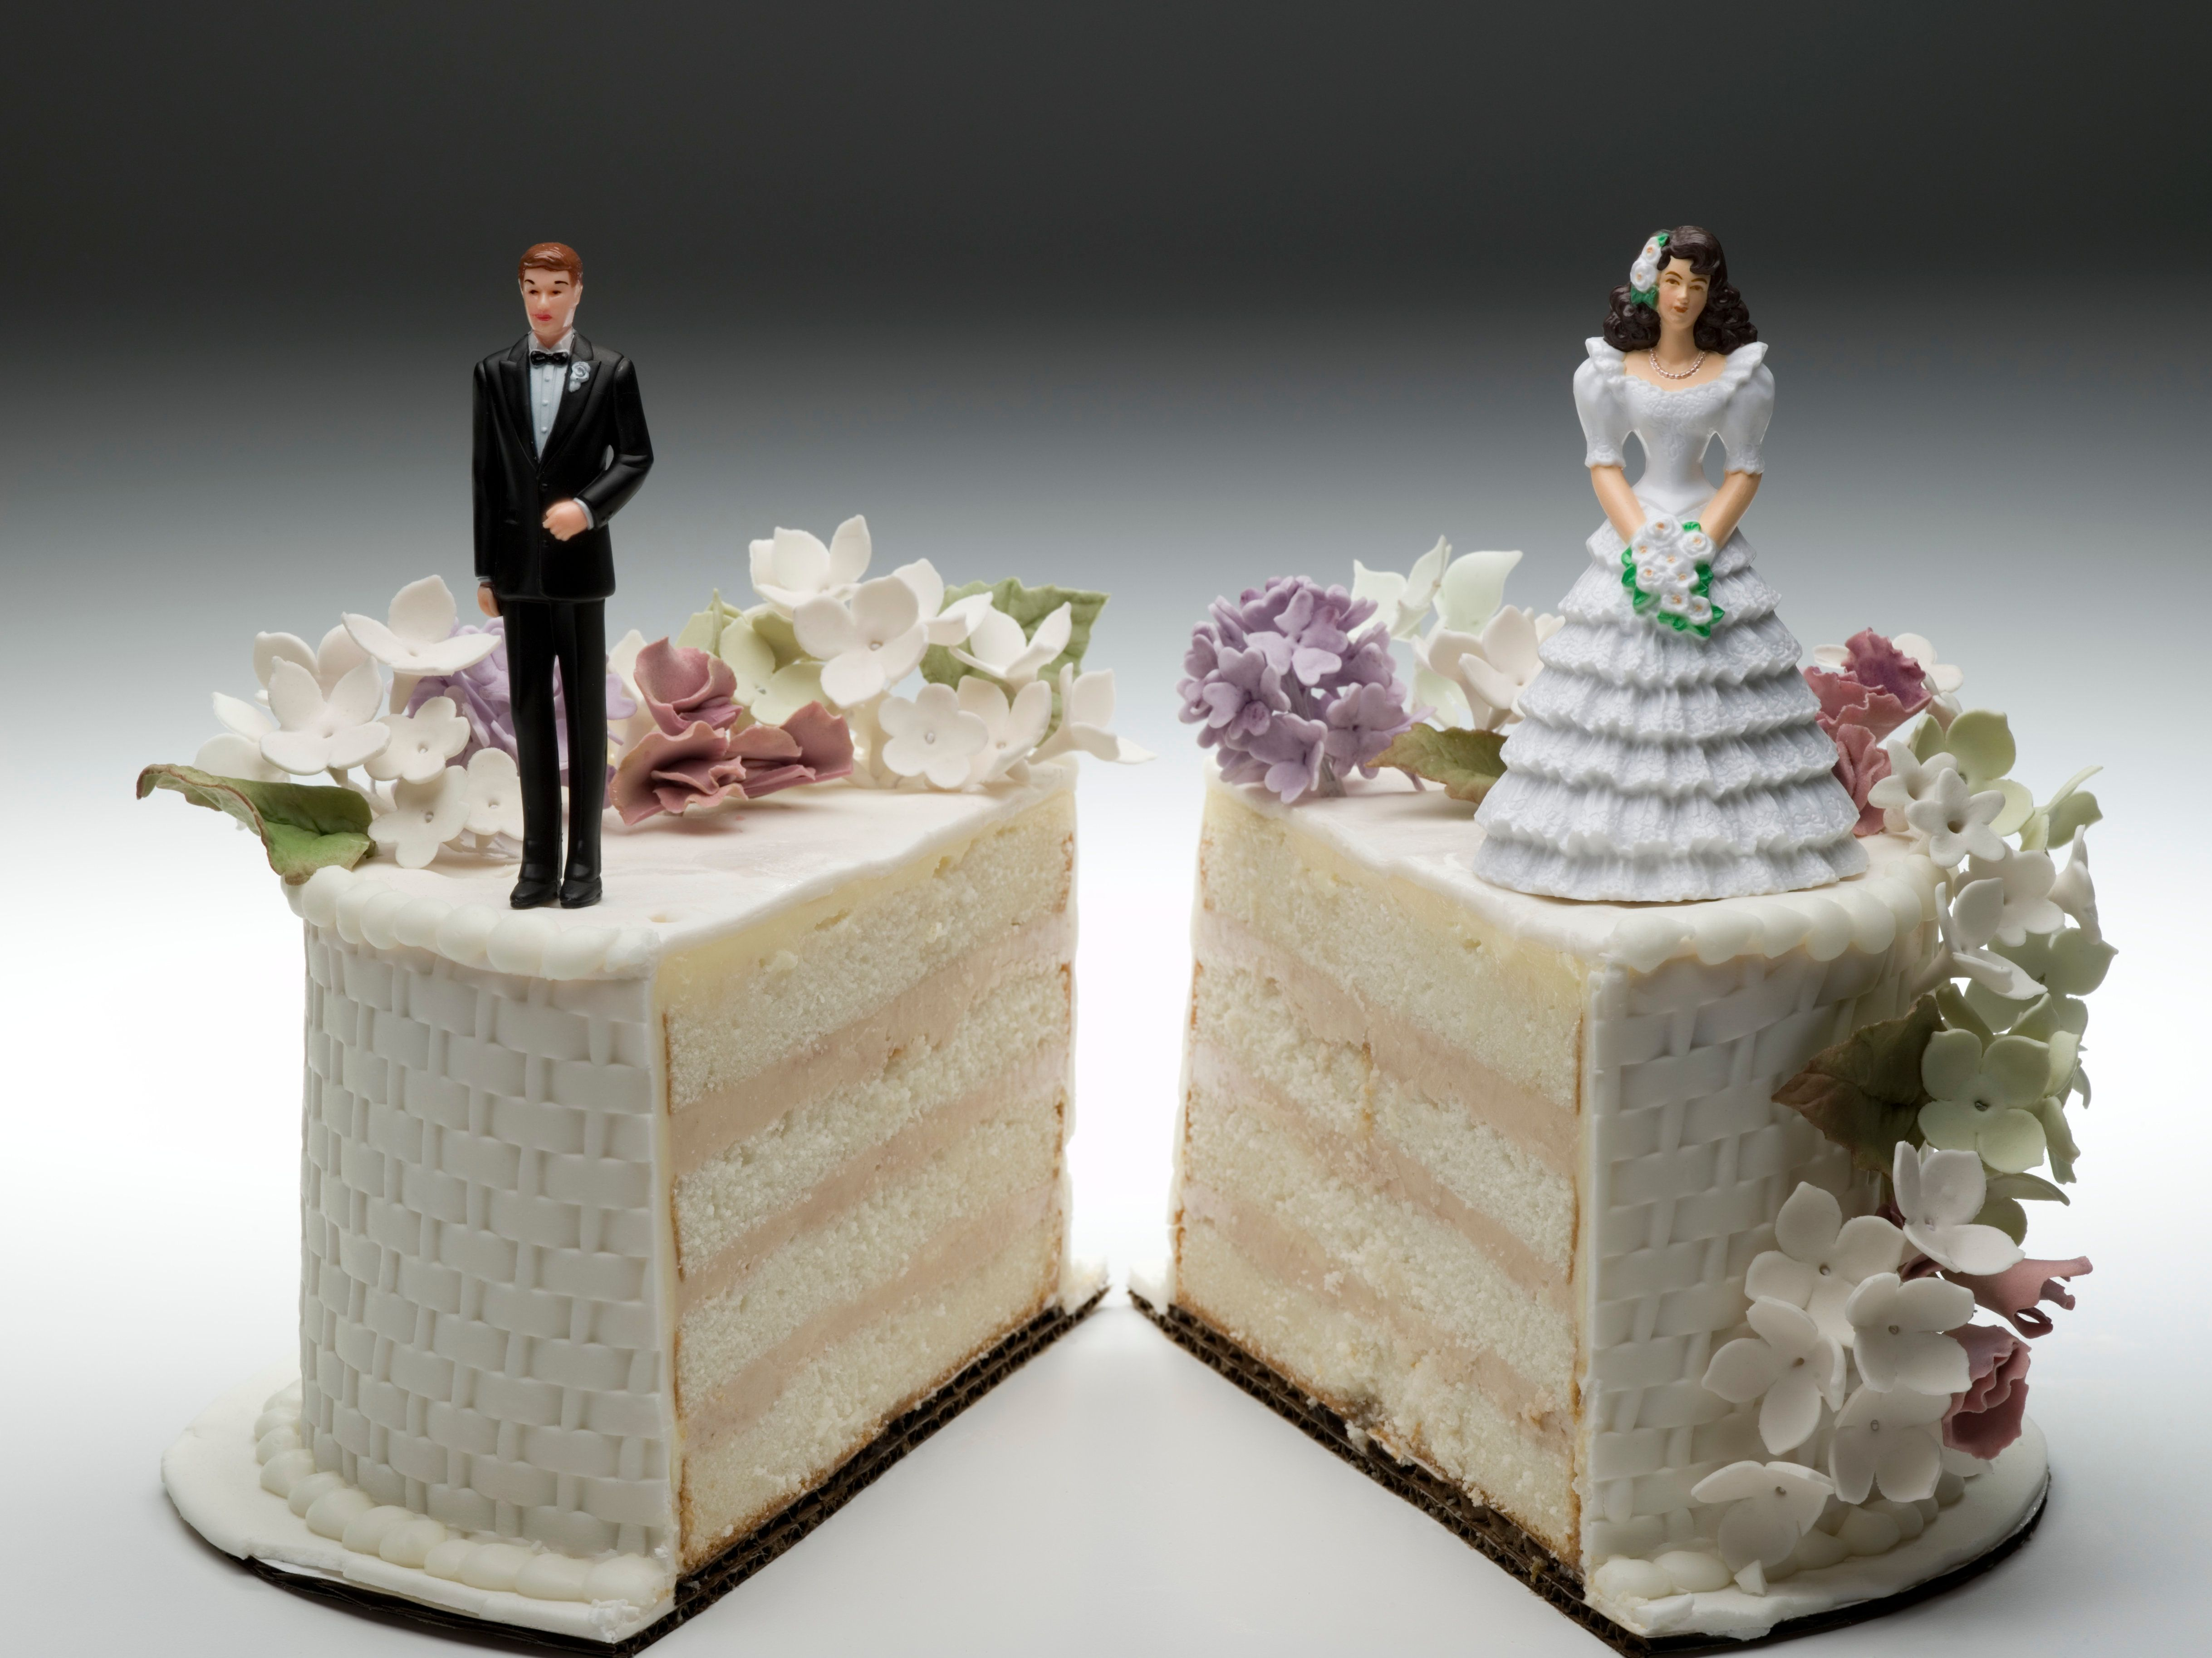 Marriage Pacts With Friends: Do They Ever